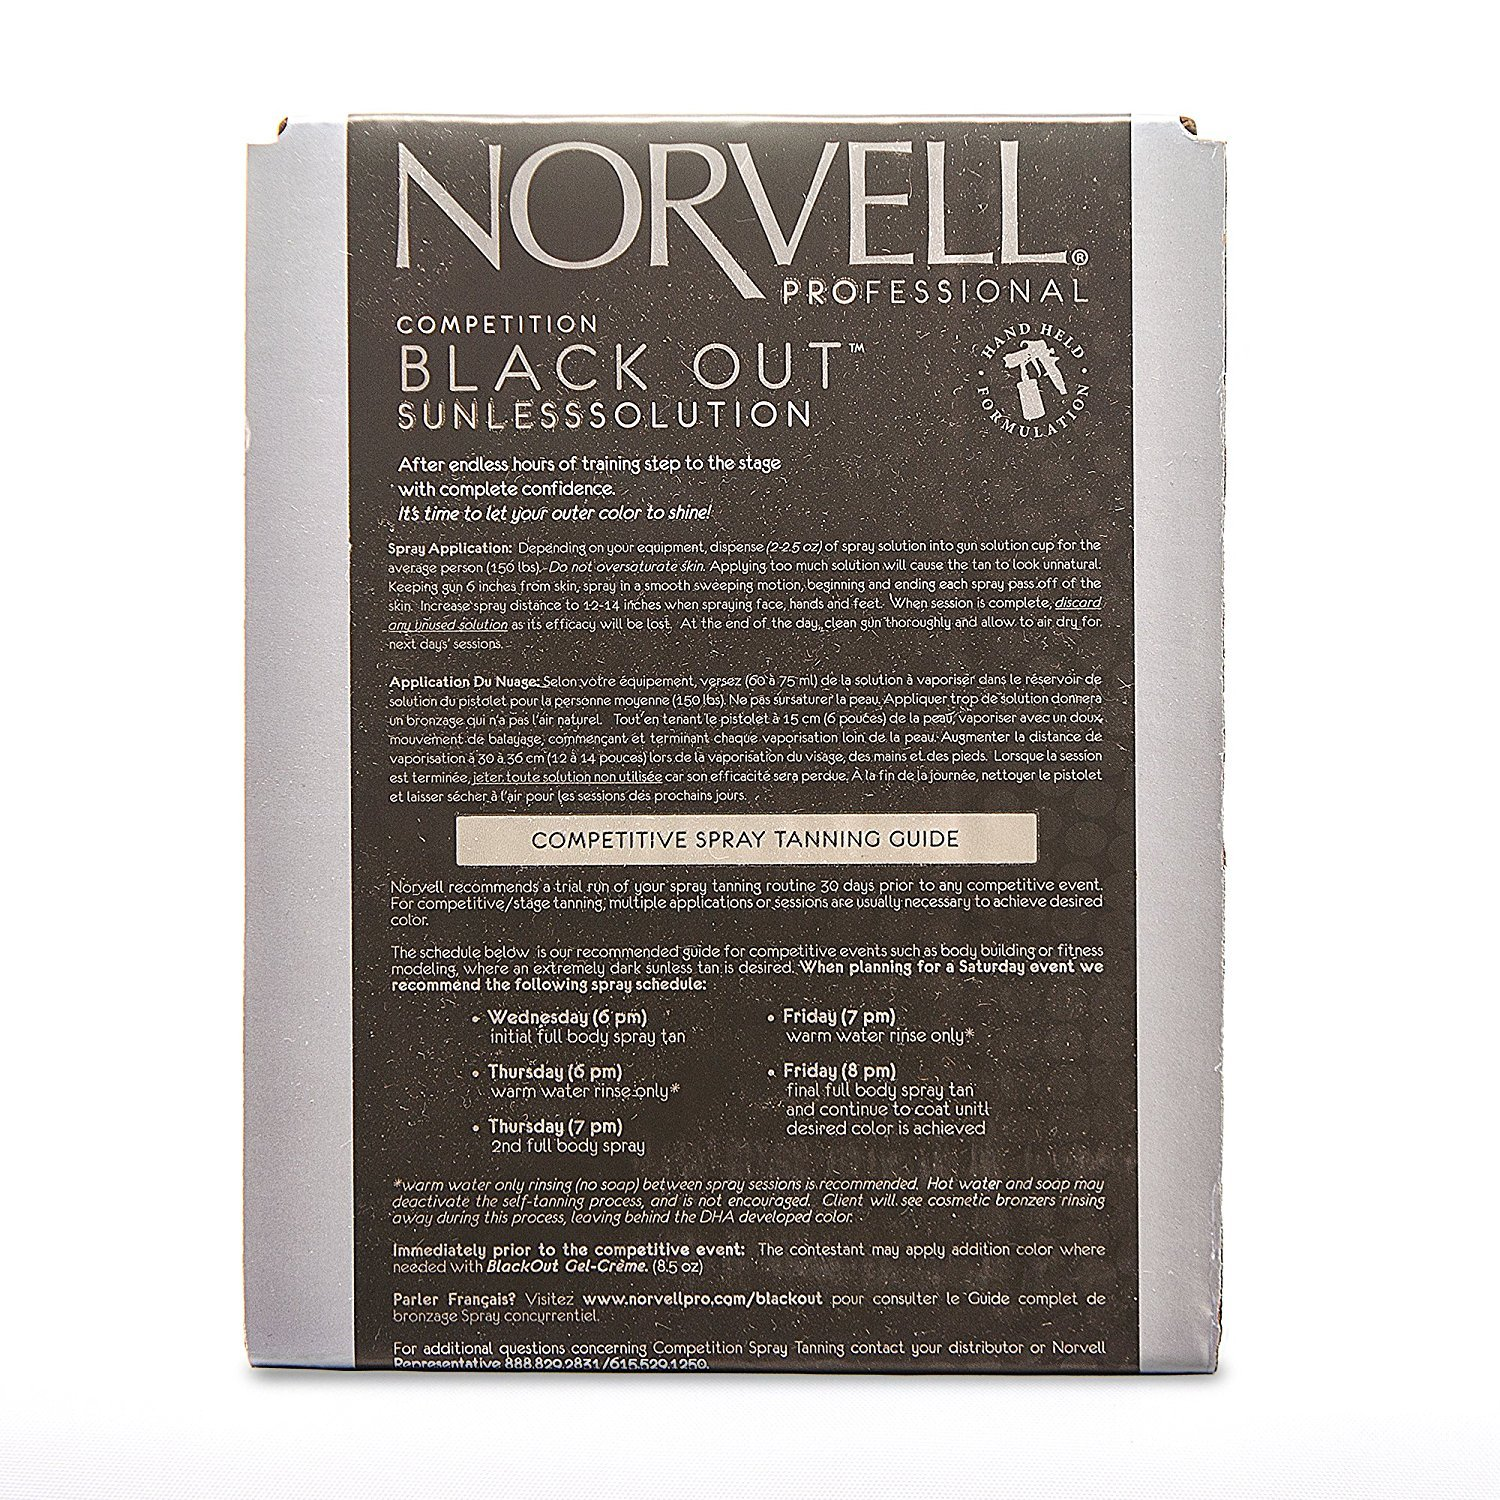 Norvell Premium Sunless Tanning Solution - Competition Black Out, 1 Liter Box by Norvell (Image #2)